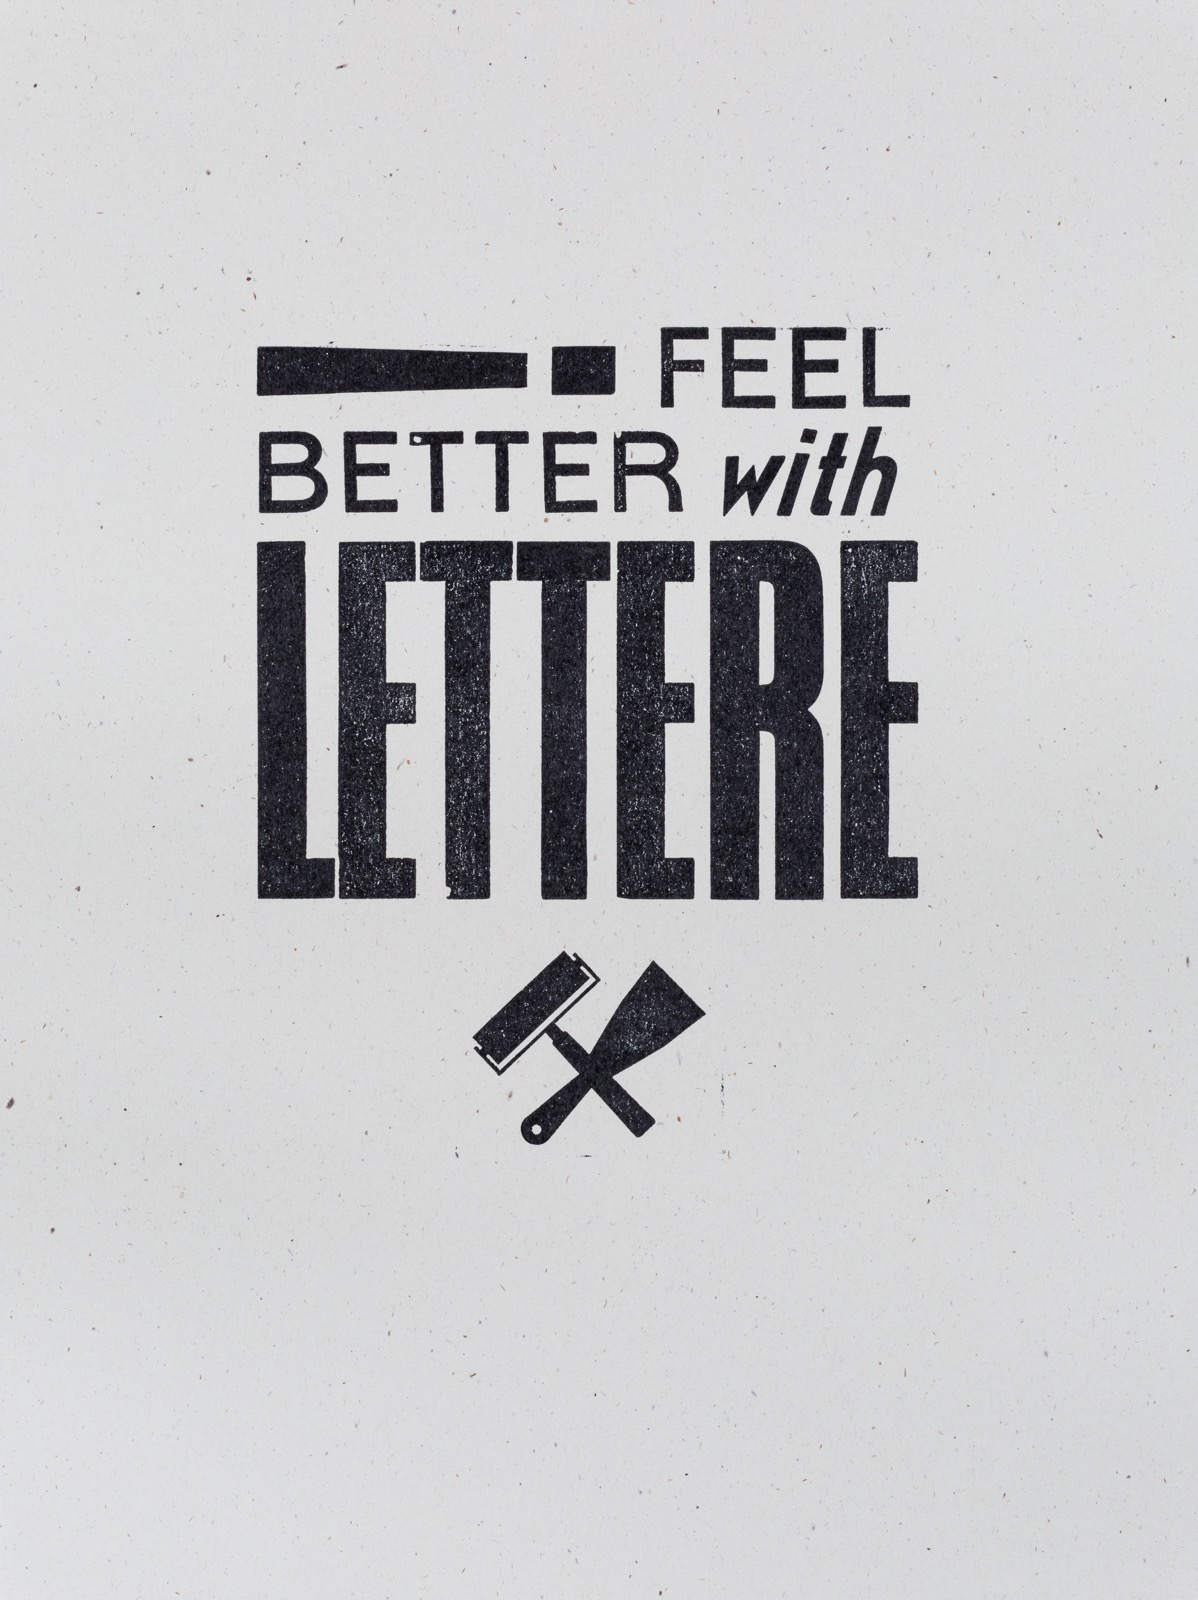 Feel better with letter